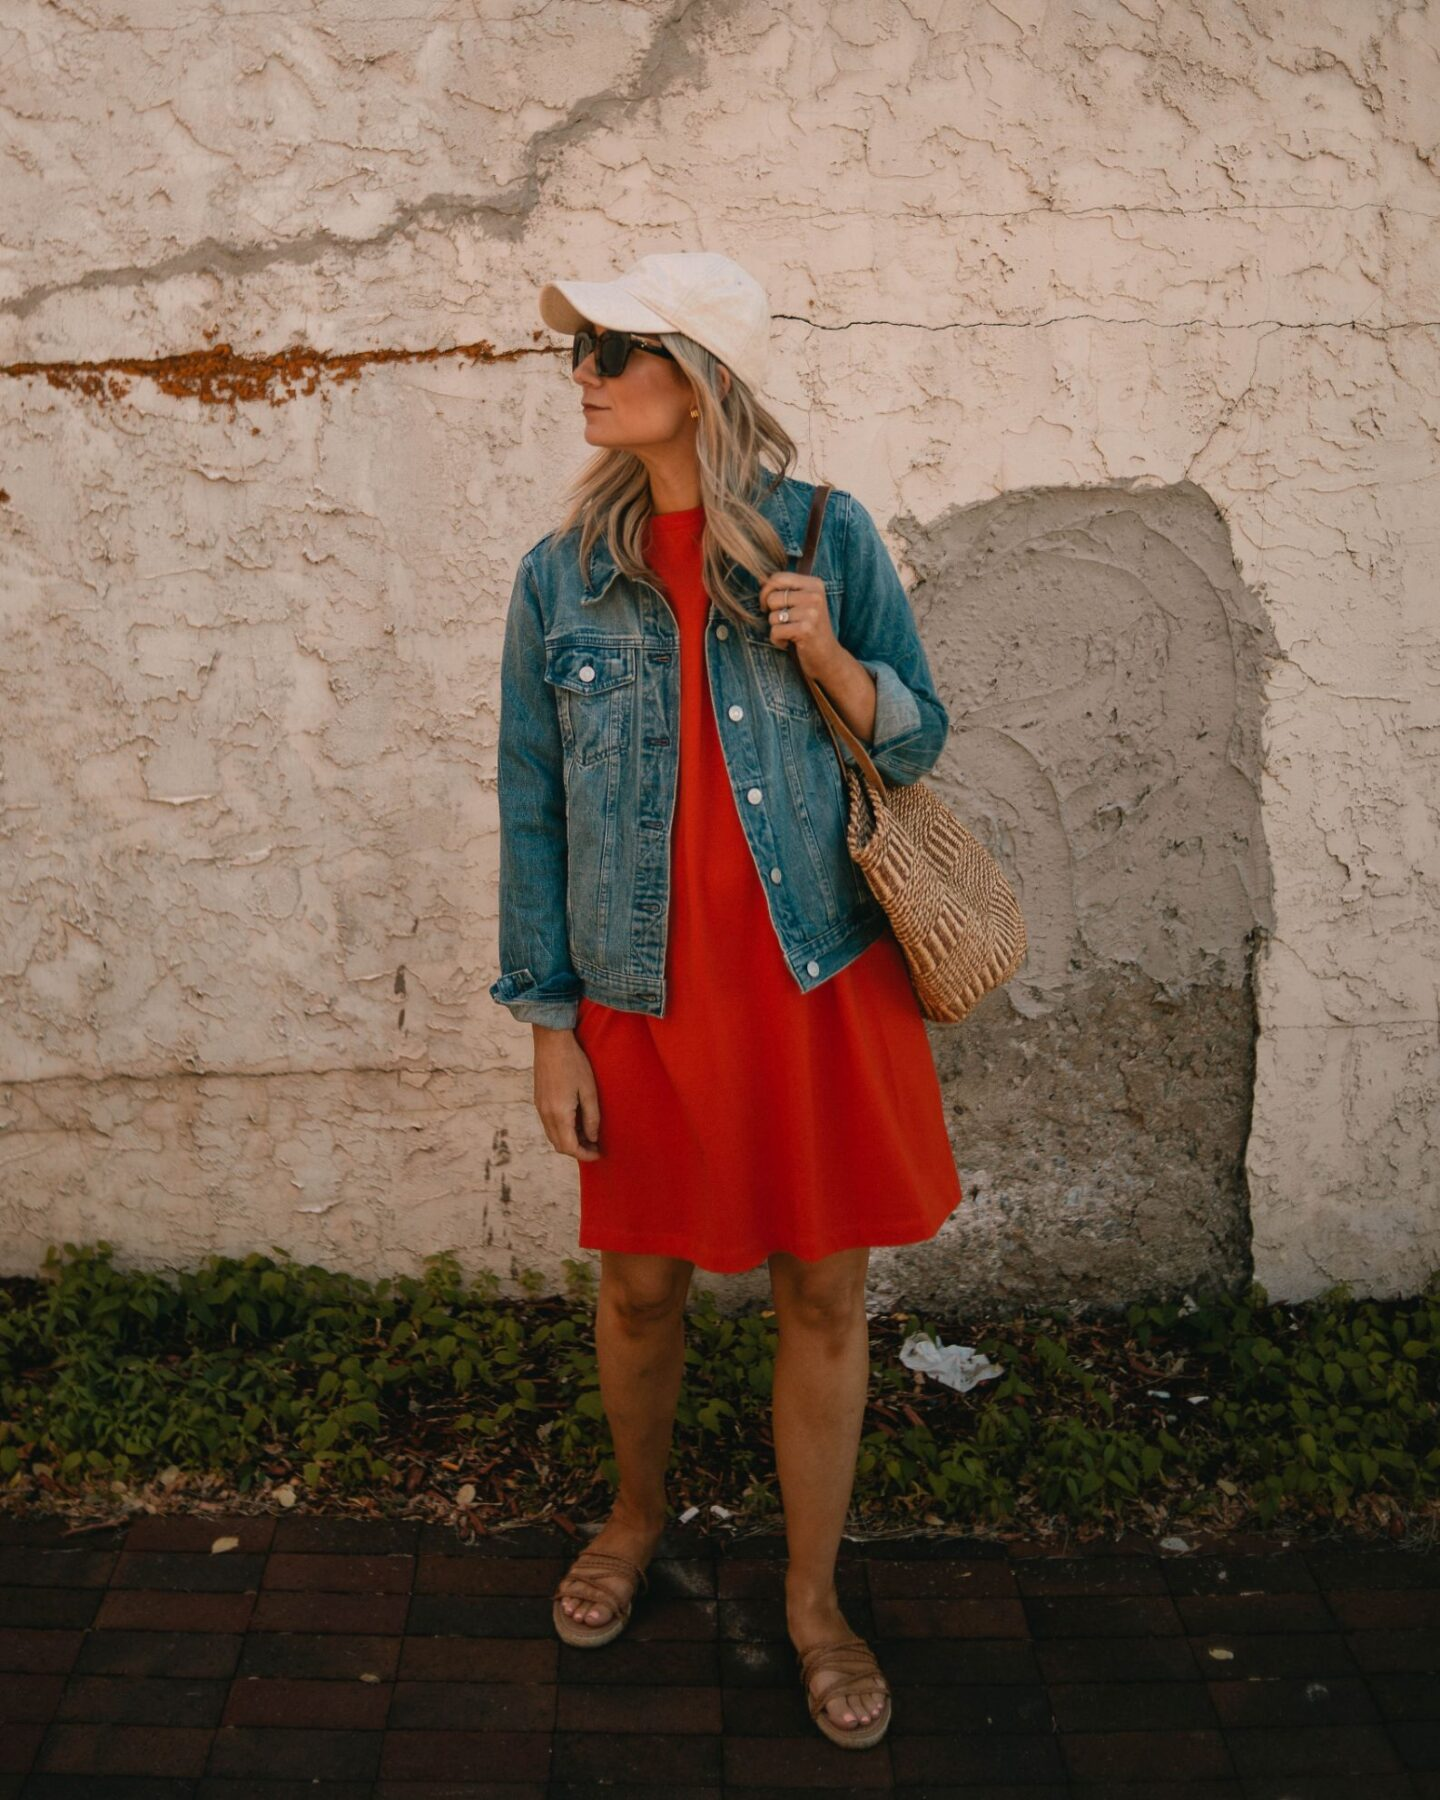 Four 4th of July Outfit Ideas - All Price Points Included!